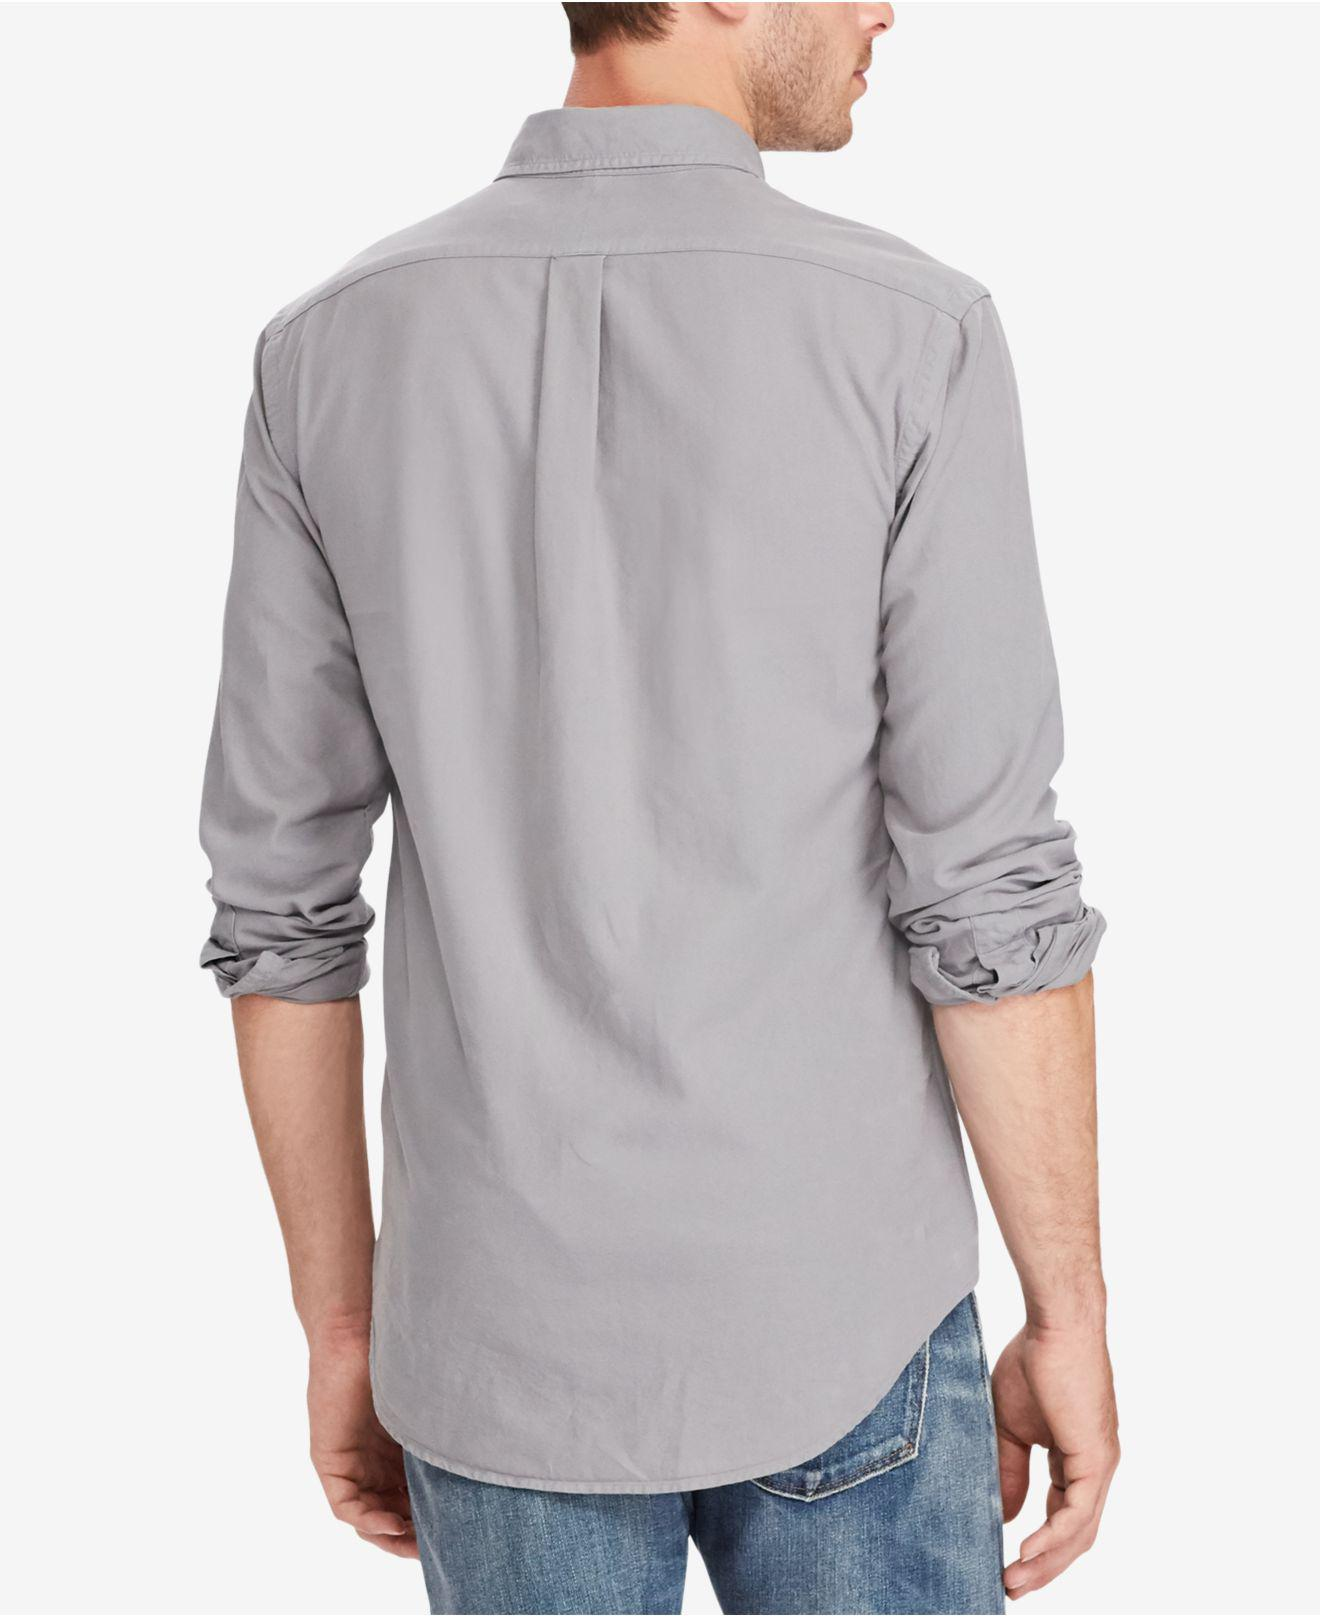 c345d28af ... switzerland clearance lyst polo ralph lauren classic fit cotton shirt  in gray for men b97e7 3ef87